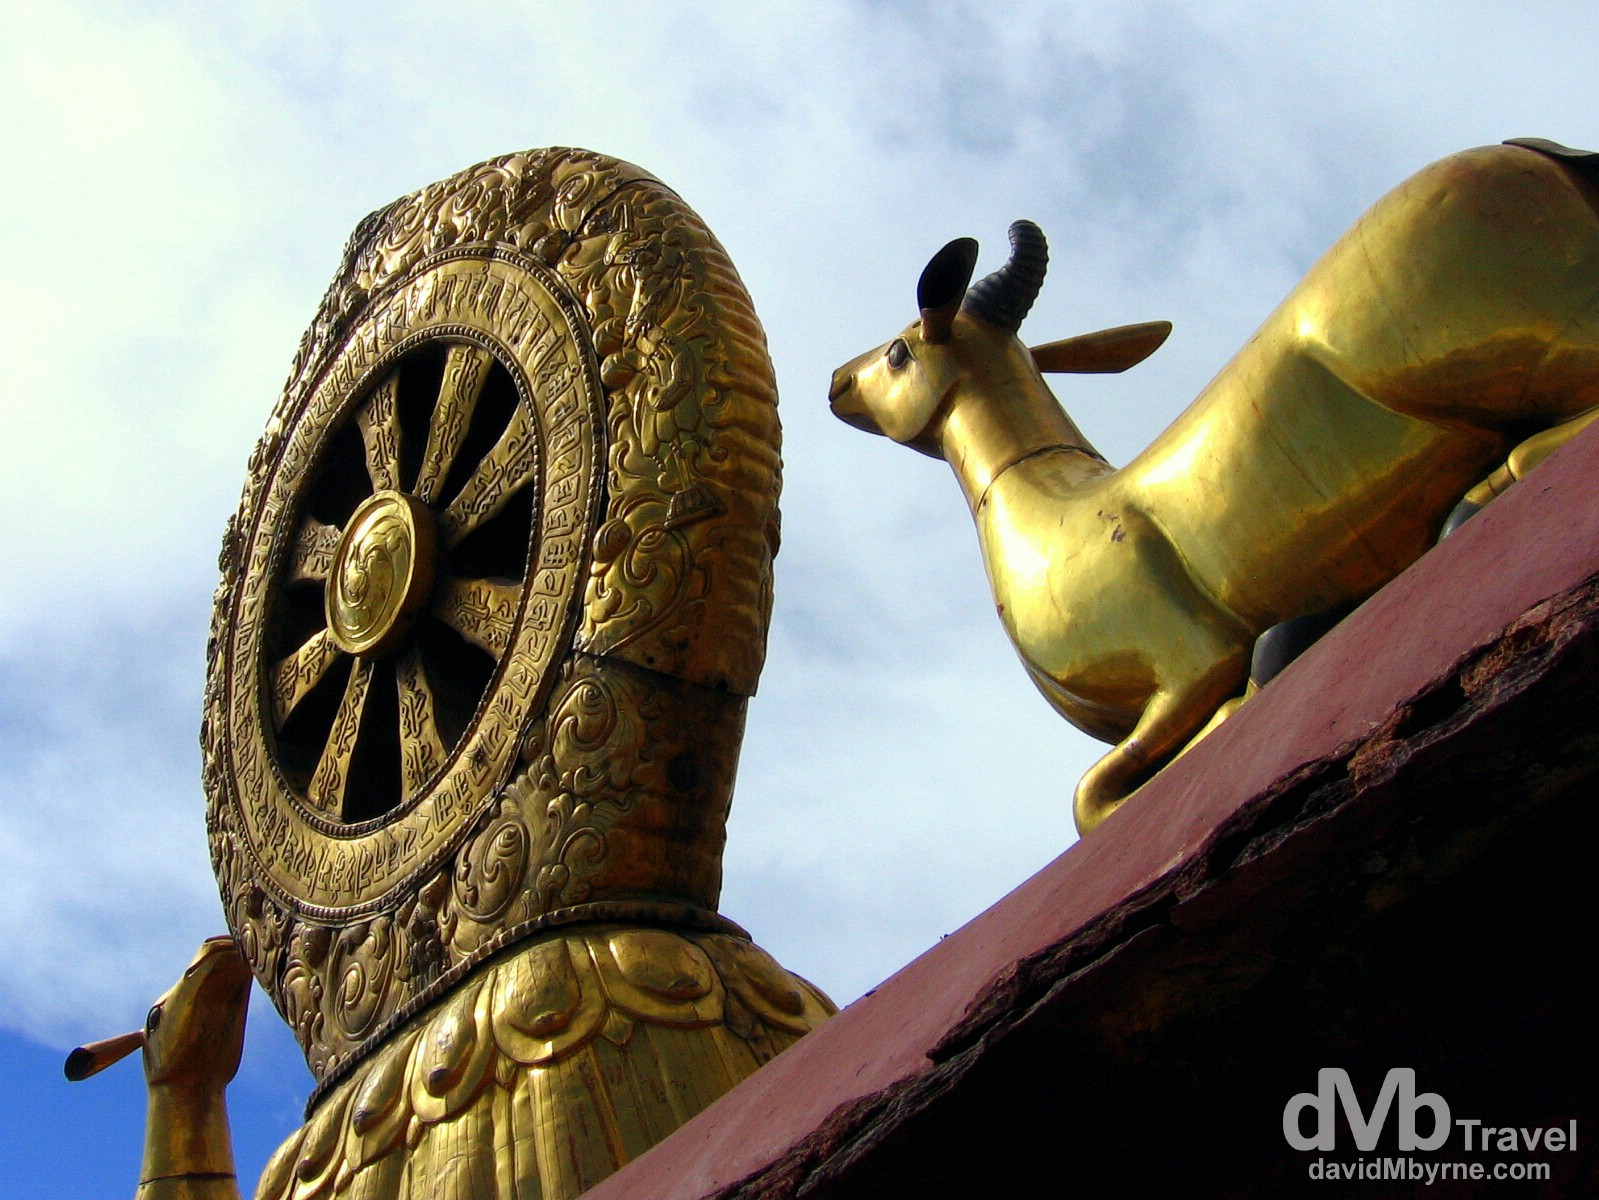 The roof of the Jokhang Temple in Lhasa, Tibet. February 27th, 2008.